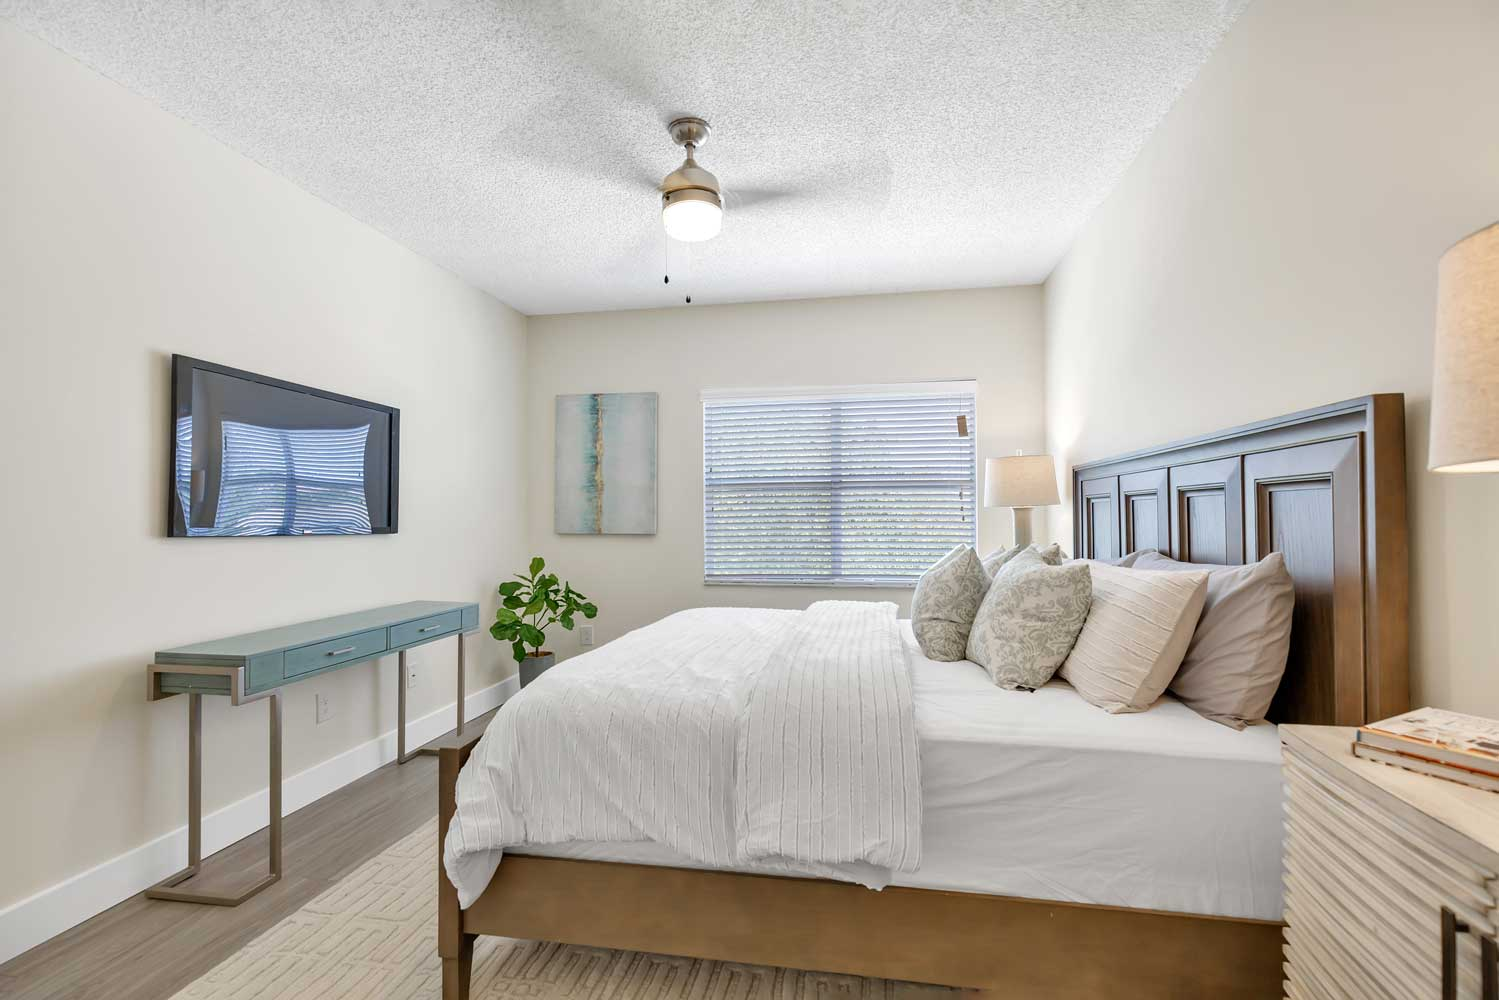 Ceiling Fans at Windsor Castle Apartments in Coral Springs, Florida